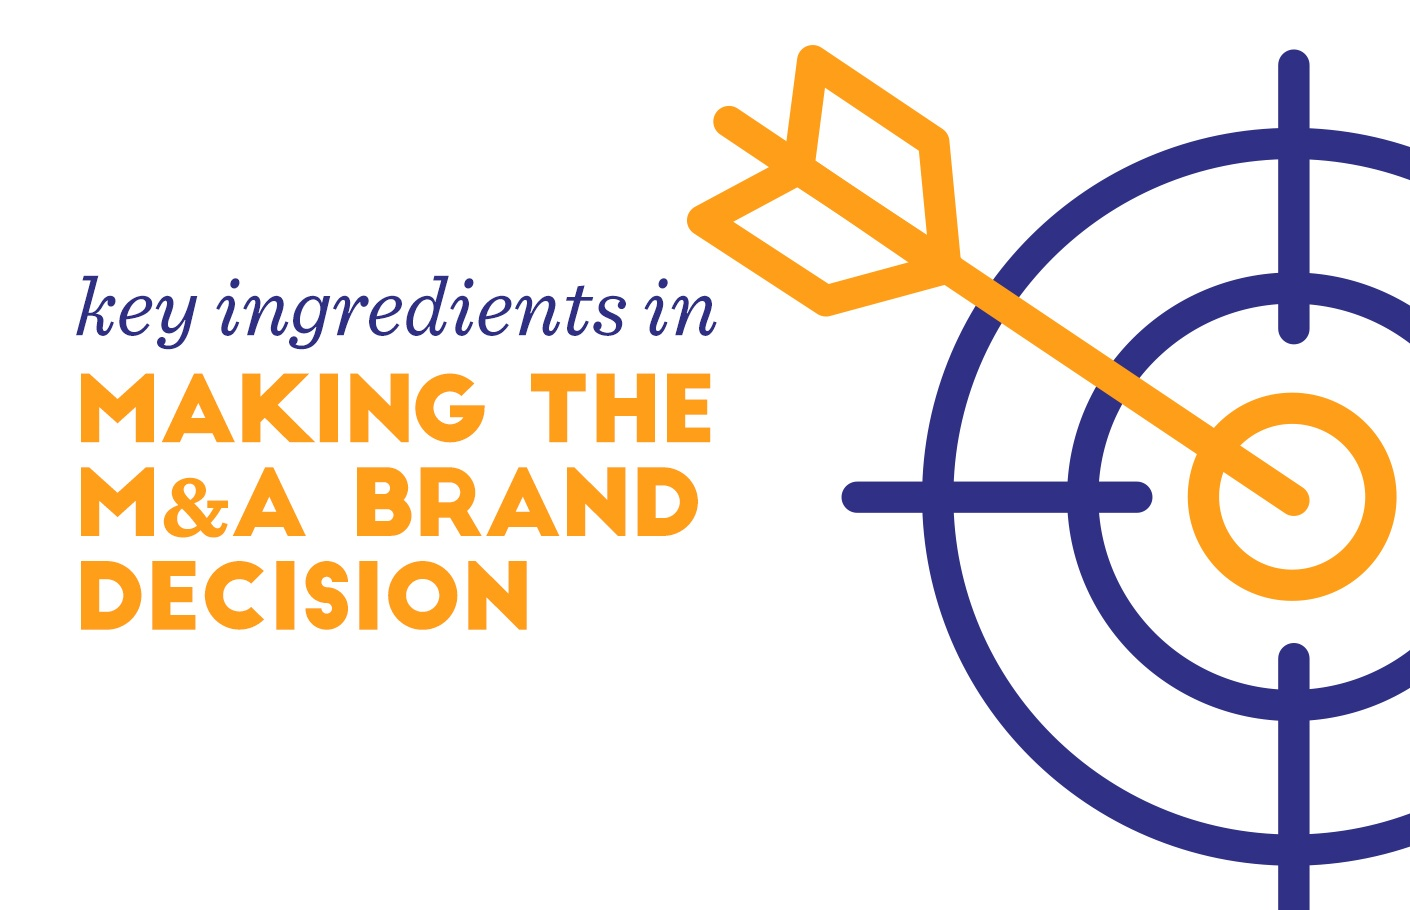 Key Ingredients to Making M&A Brand Decisions